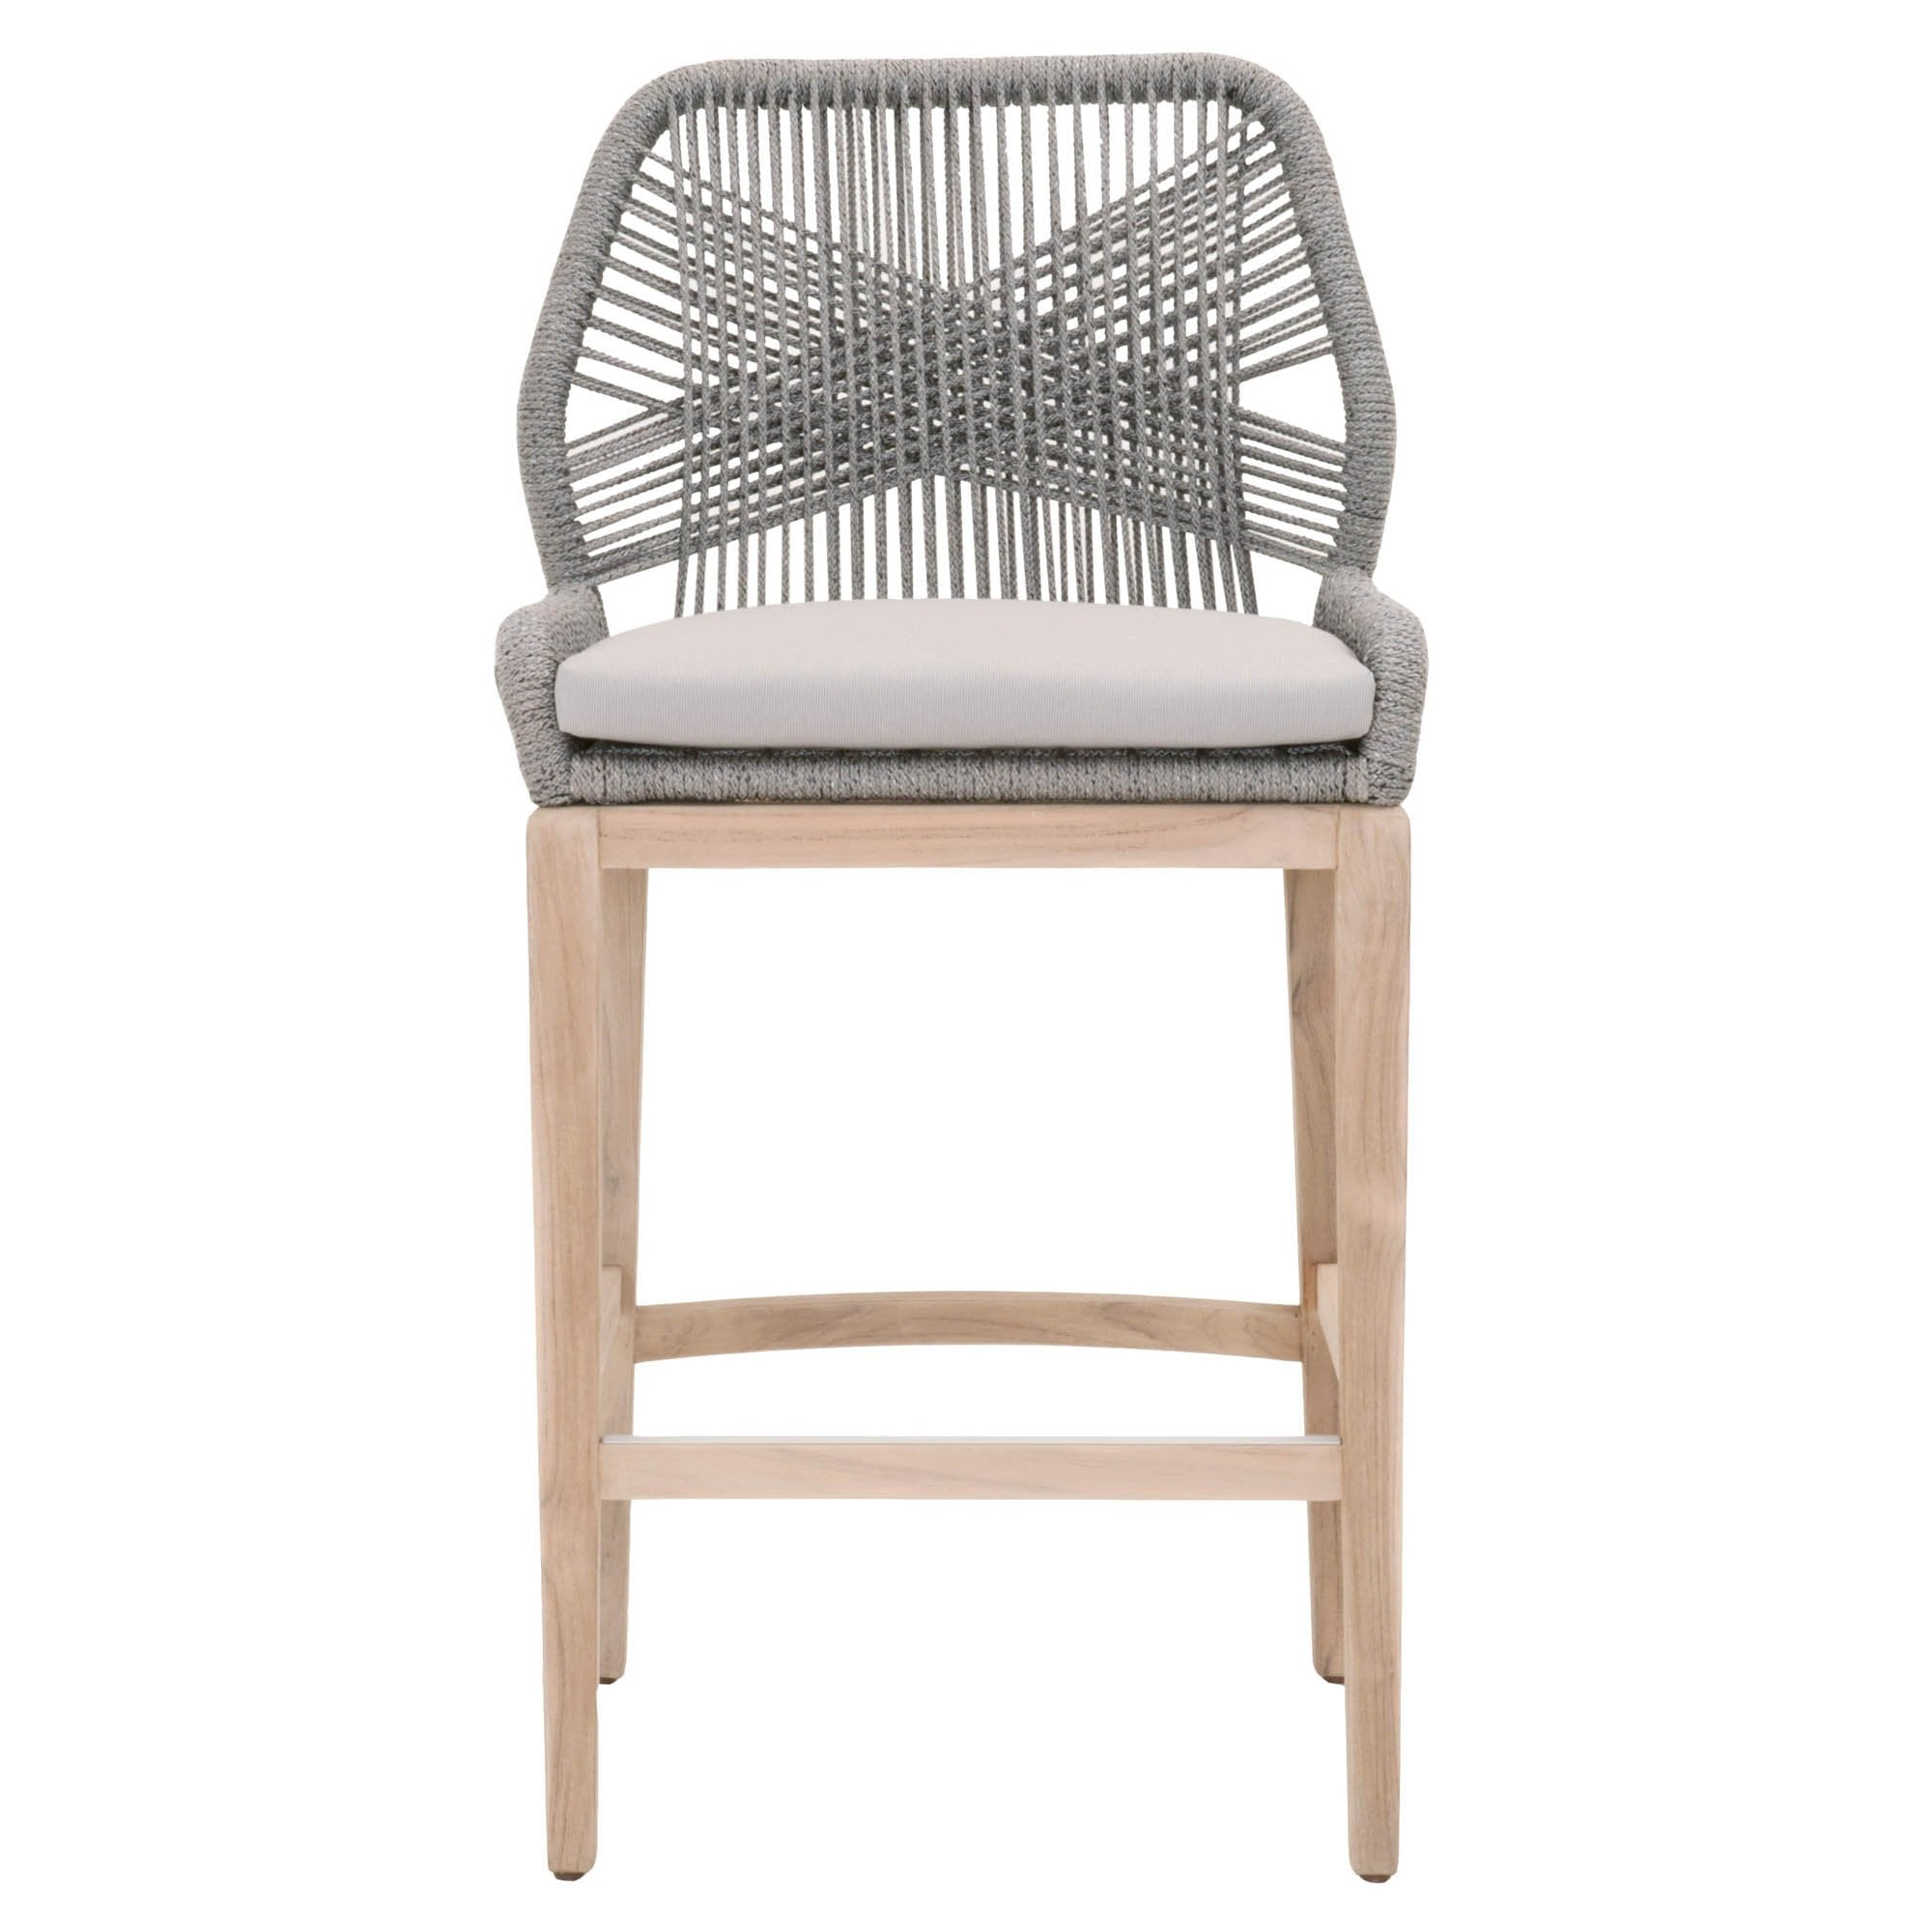 Loom Outdoor Barstool in Platinum Rope